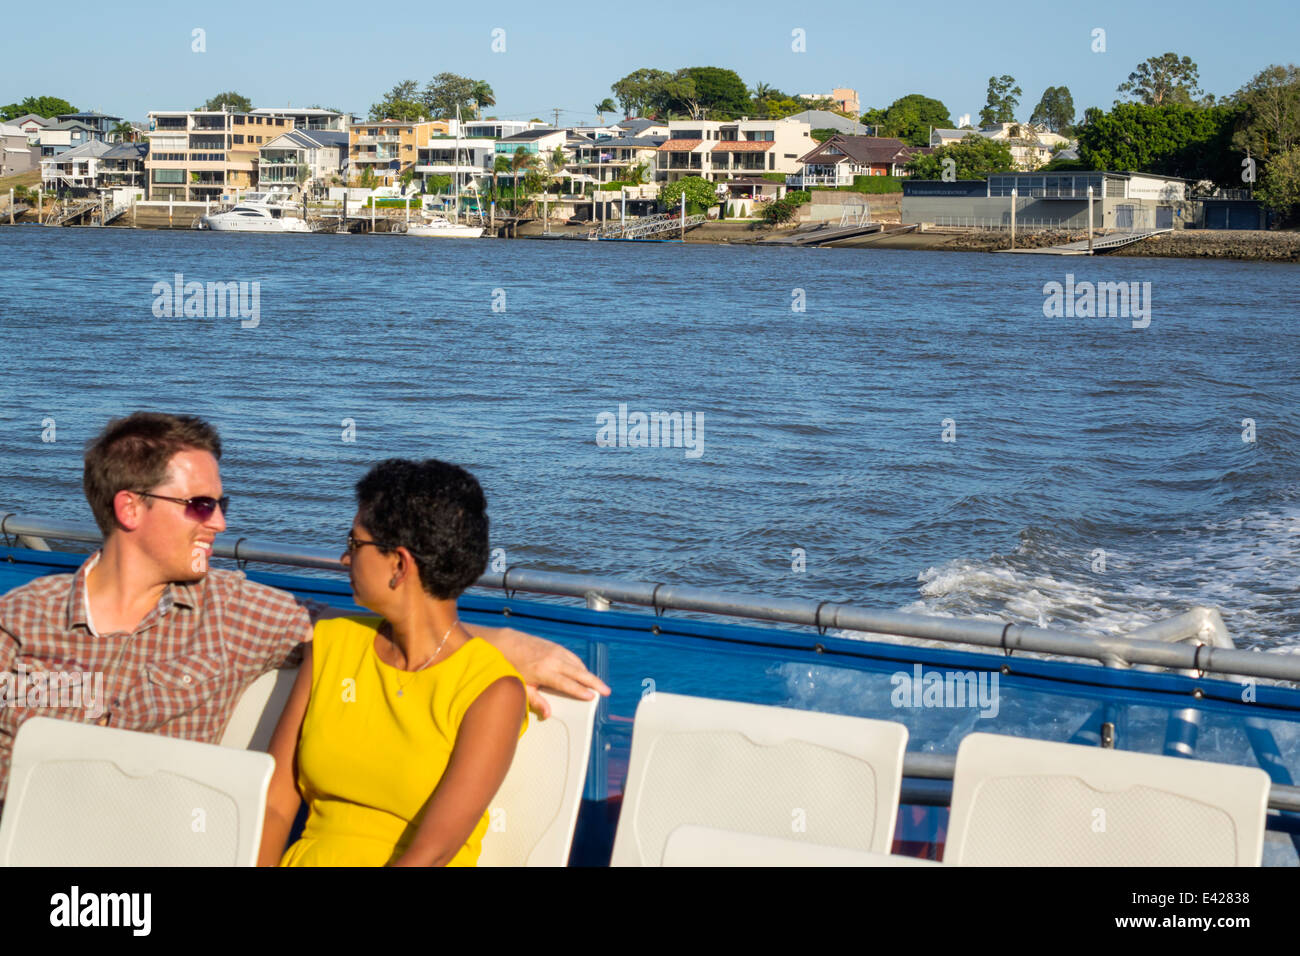 Brisbane Australia Queensland Brisbane River New Farm waterfront residences CityCat ferry boat public transportation - Stock Image